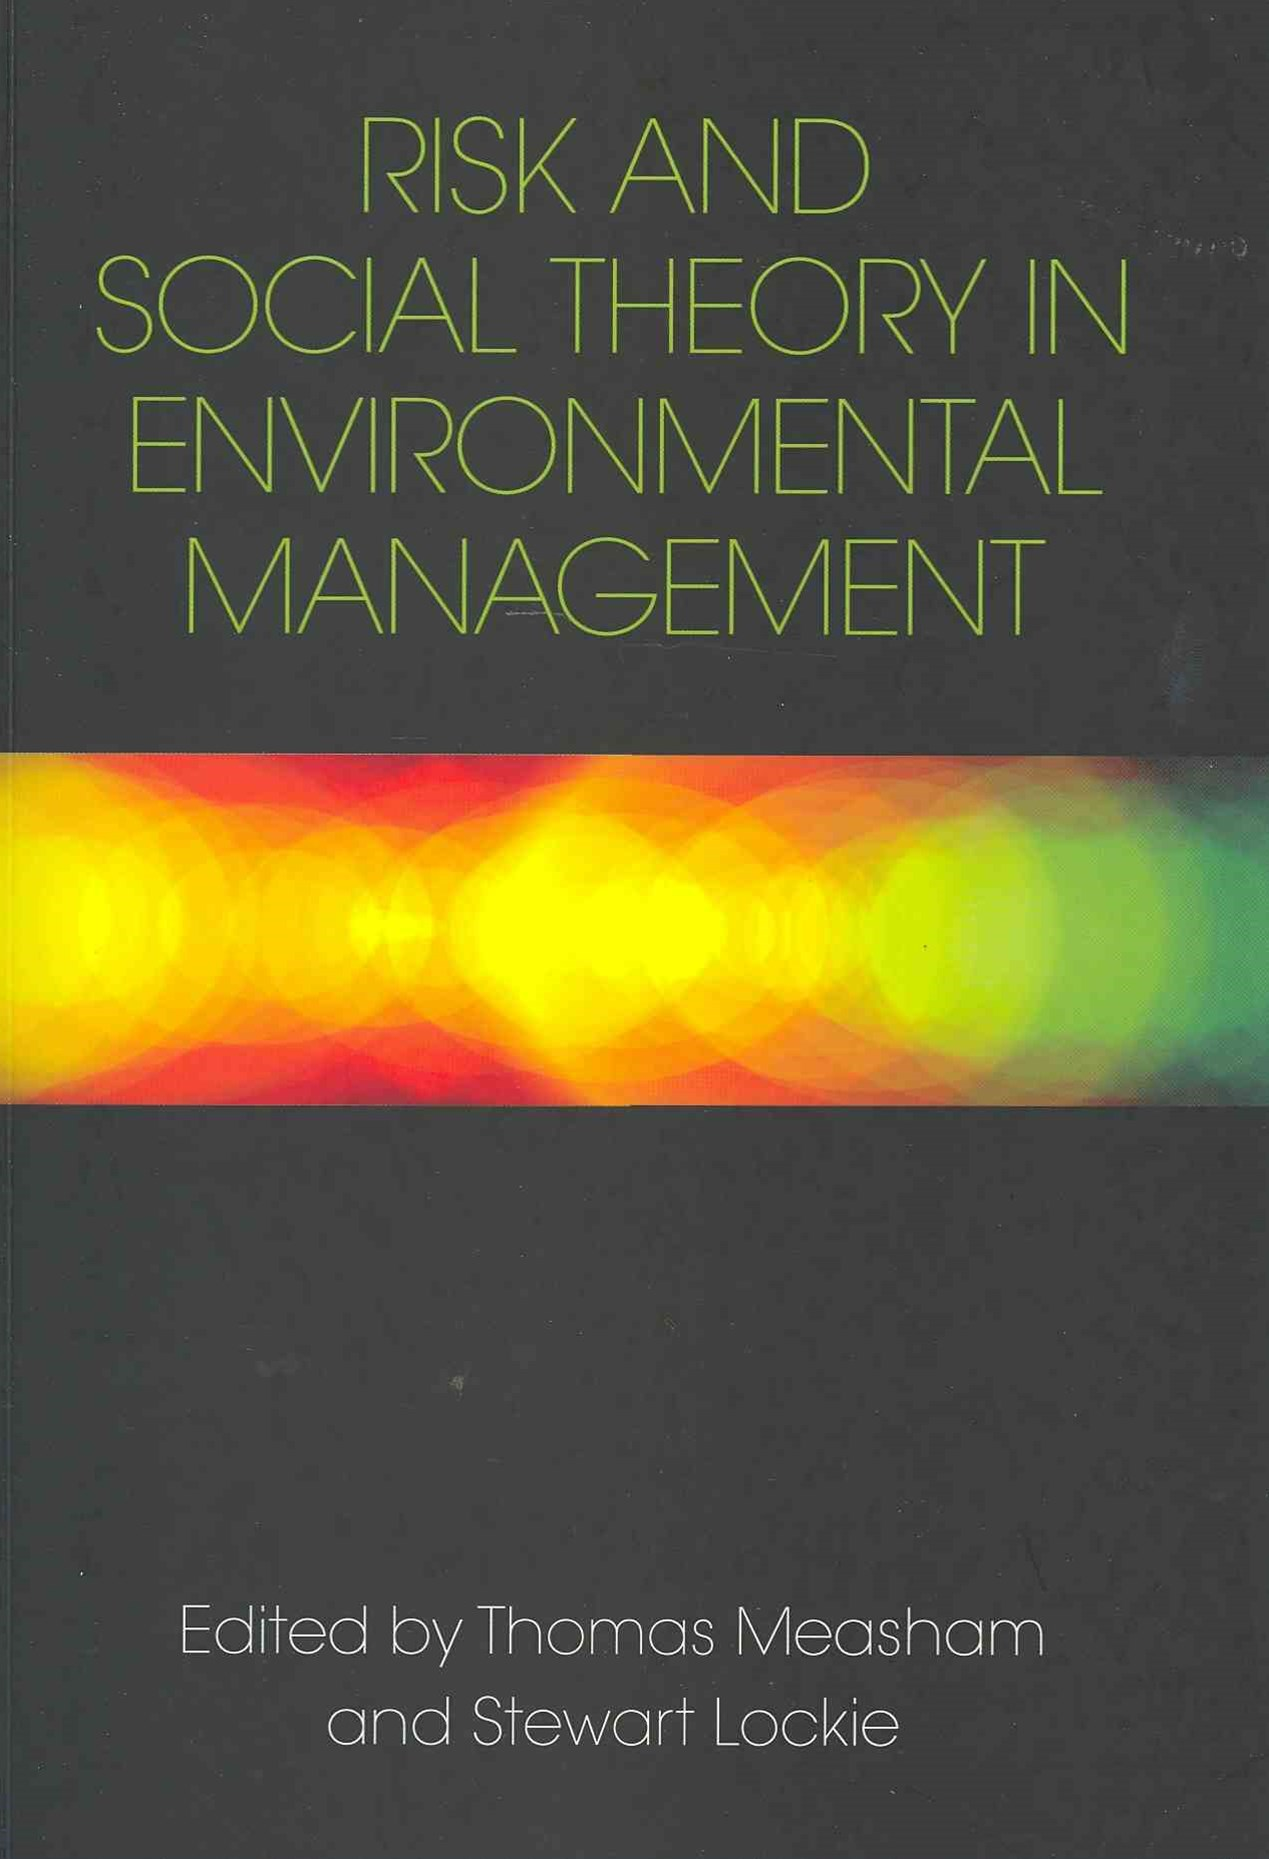 Risk and Social Theory in Environmental Management